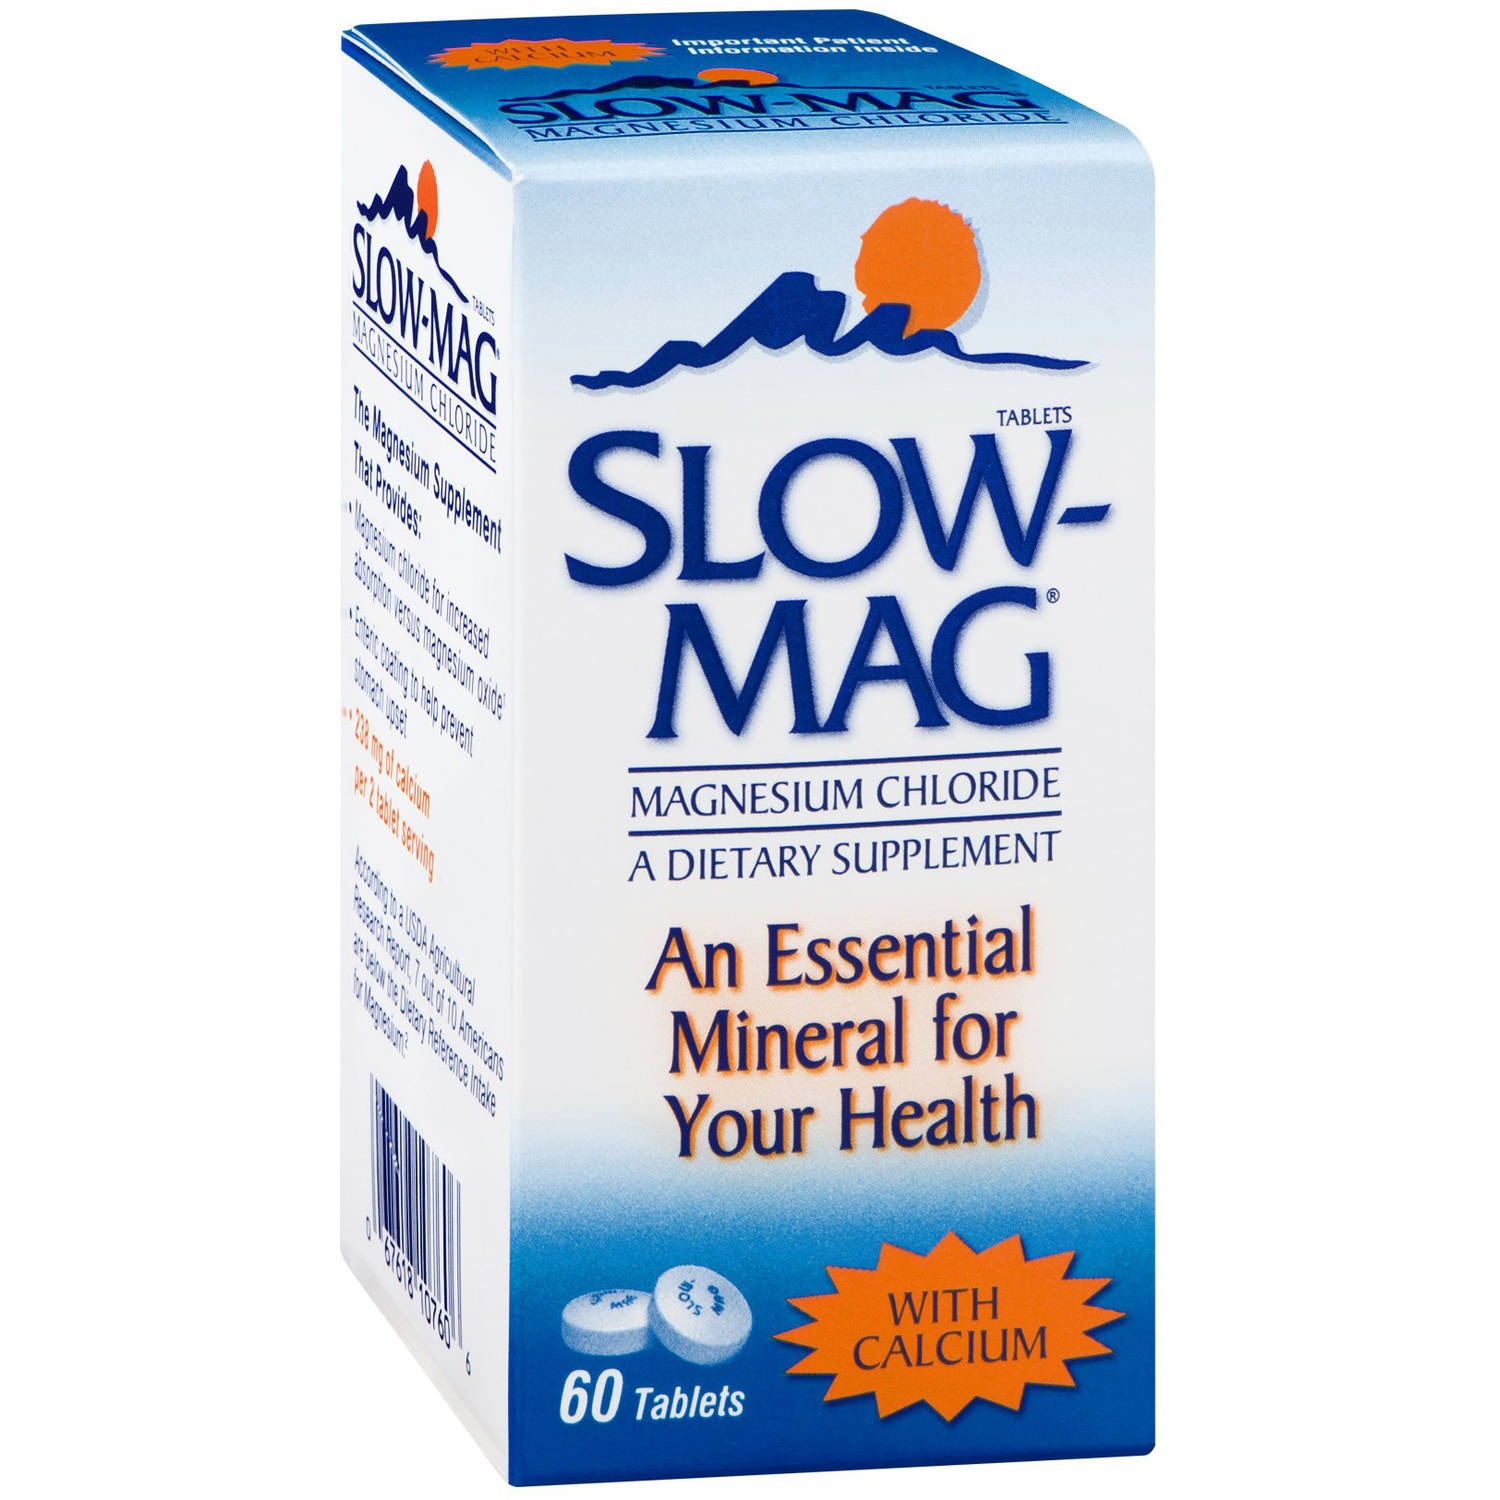 Slow-Mag Magnesium Chloride with Calcium, 60 CT (Pack of 3)